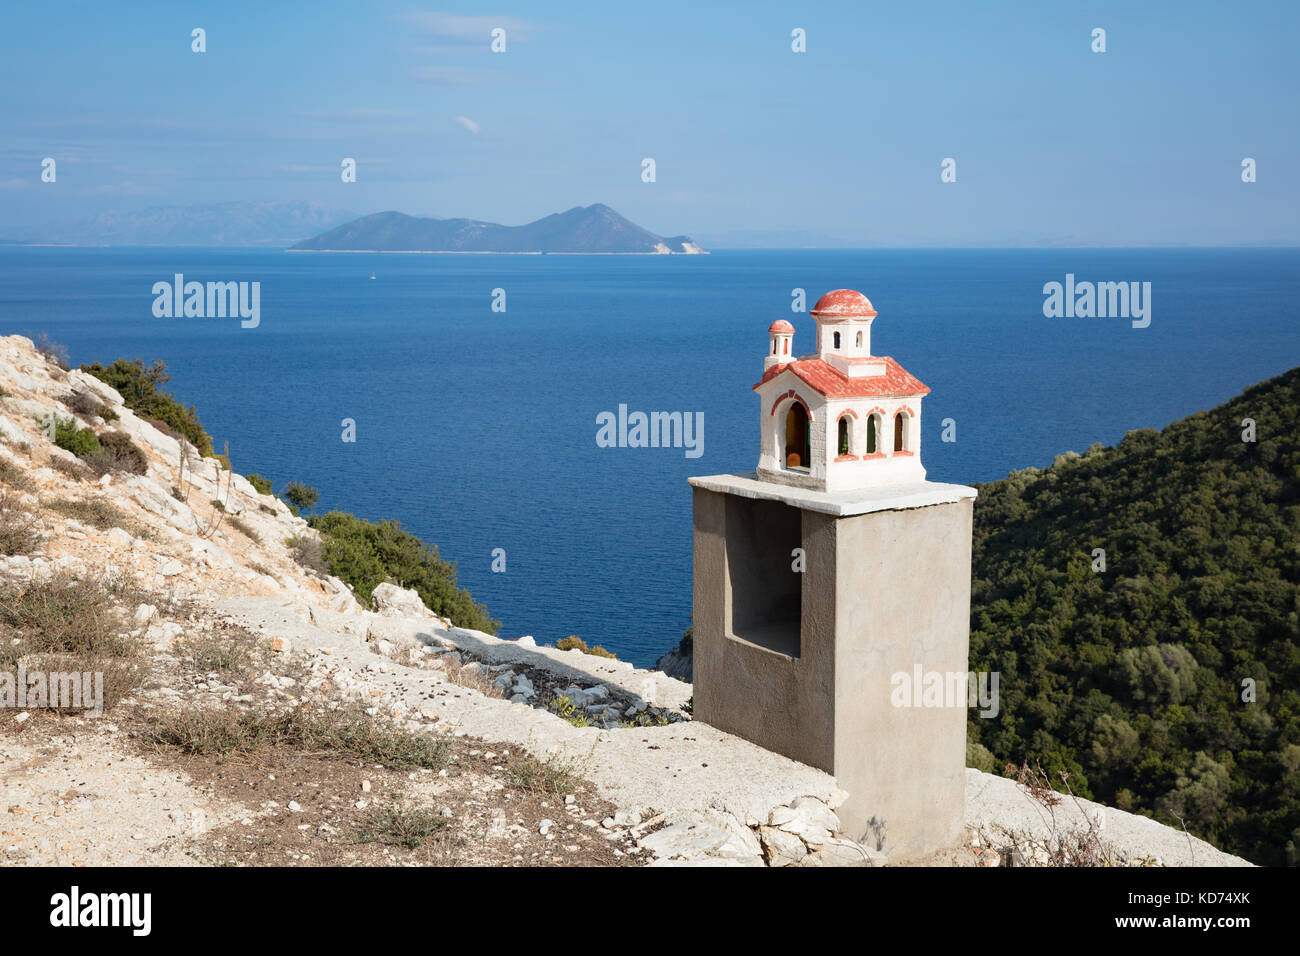 Roadside shrine in the form of a church on the island of Ithaka in the Ionian Islands Stock Photo